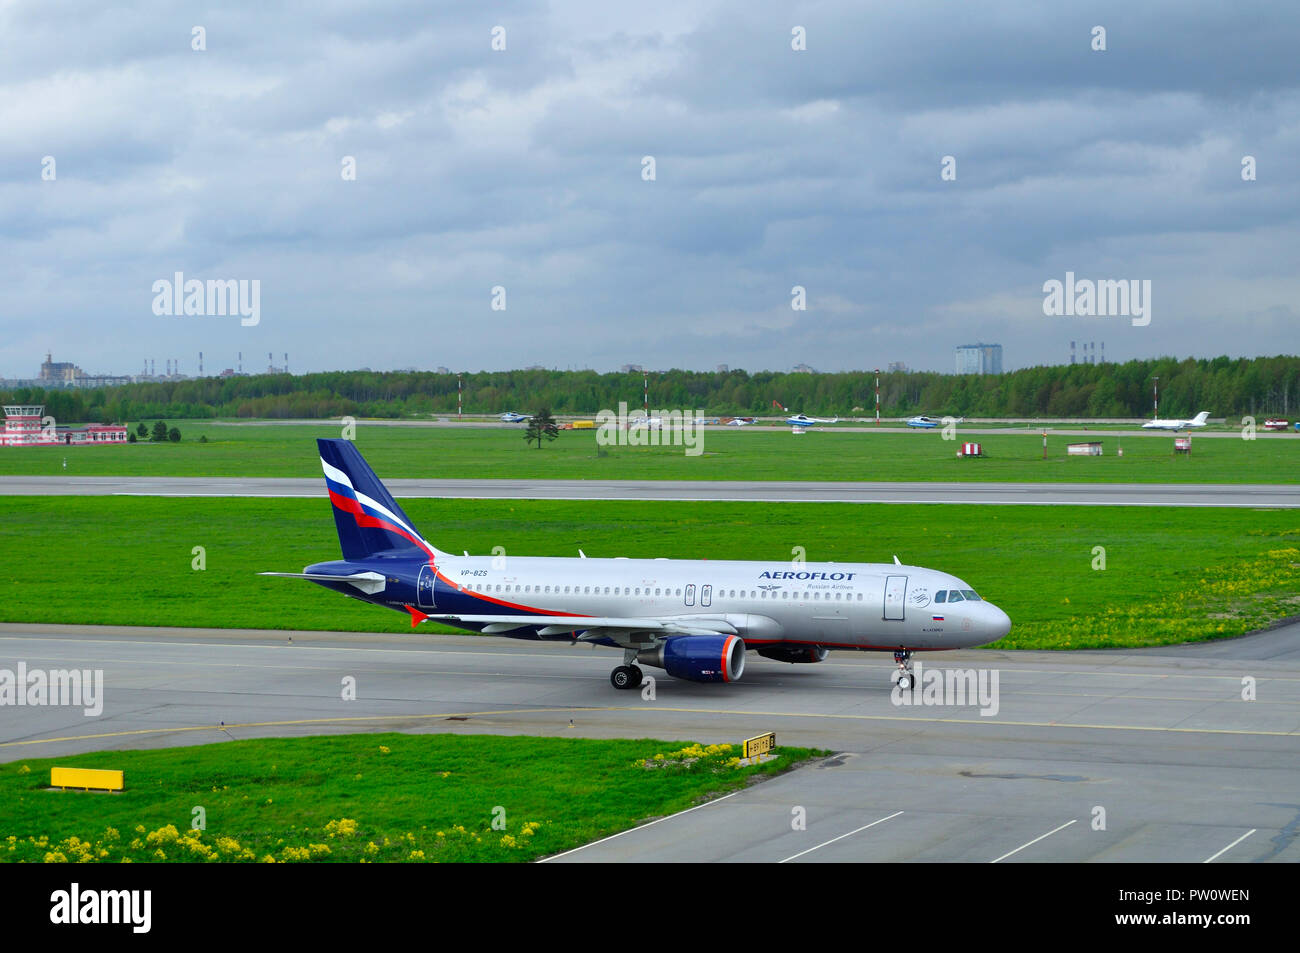 Saint Petersburg, Russia - May 23,2015. VP-BZS Aeroflot Airlines Airbus A320-214 airplane rides on the runway preparing for lift-off in Pulkovo Intern - Stock Image